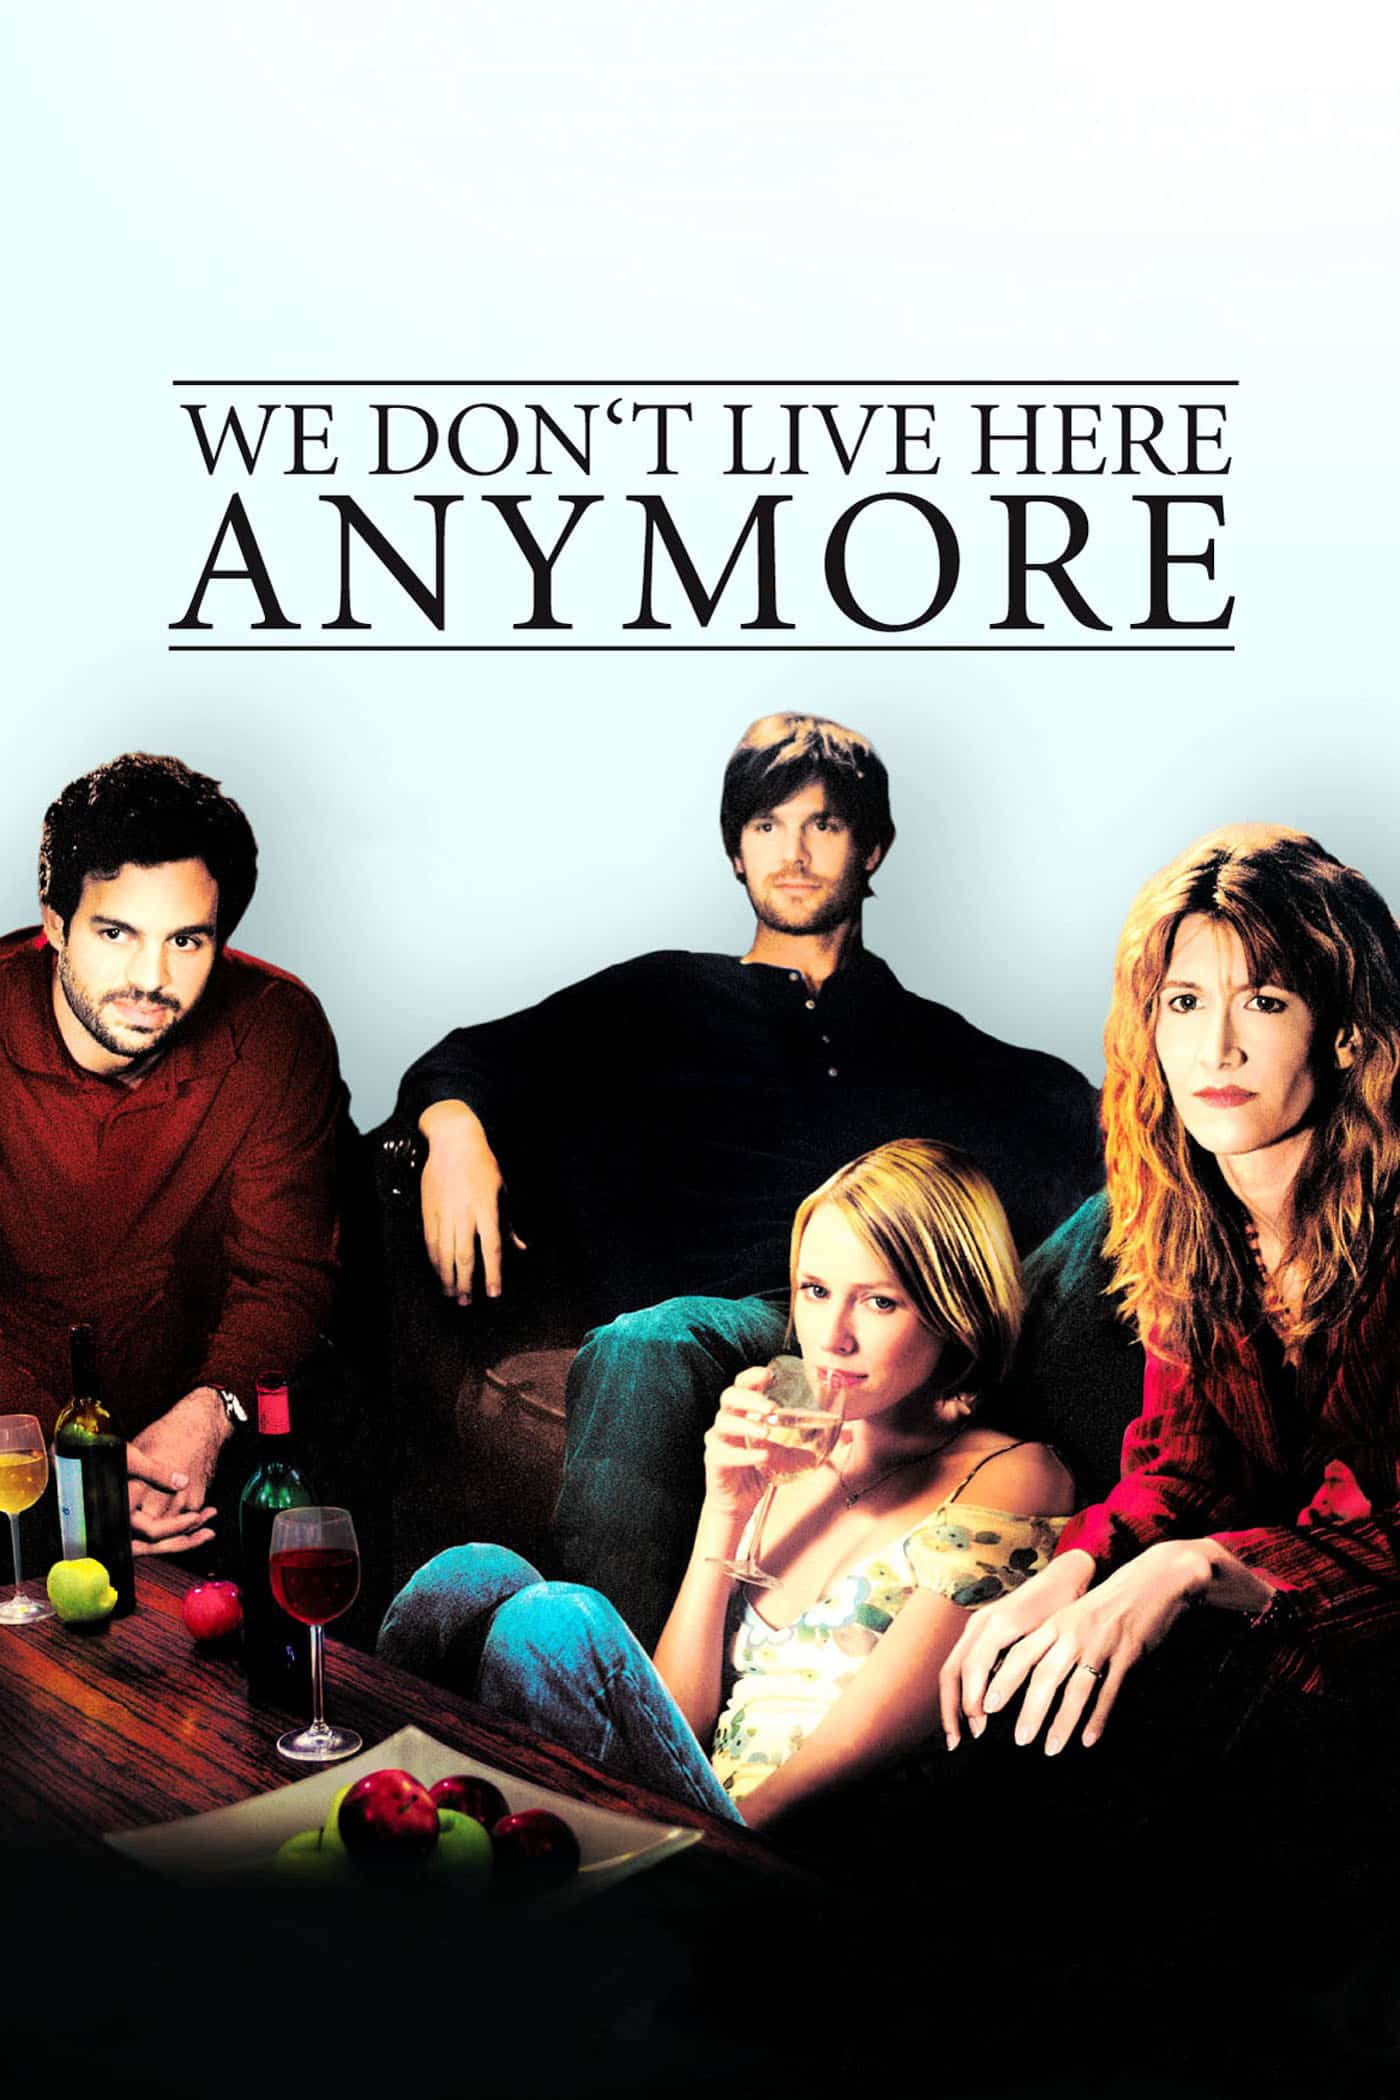 We Don't Live Here Anymore, 2004